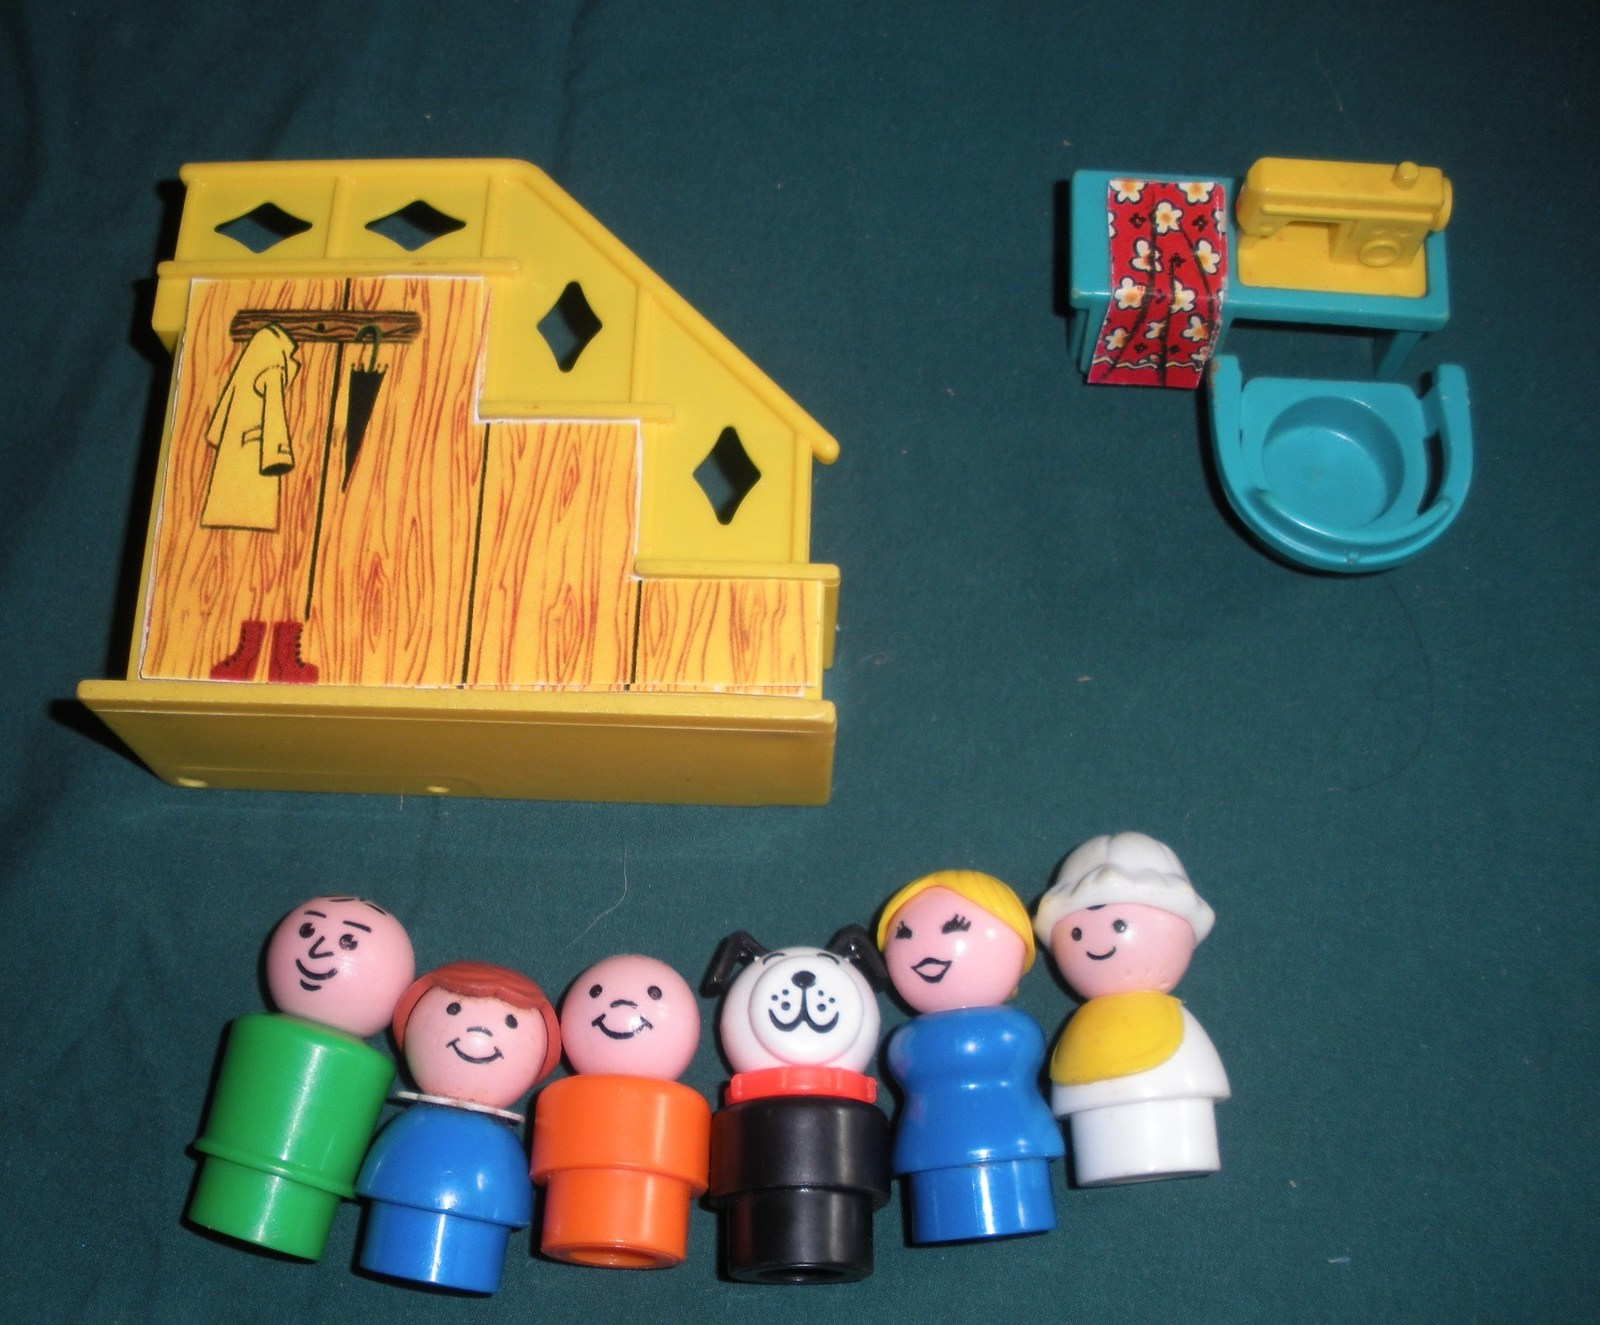 Vtg. Fisher Price Little People #952 Yellow House Comp.+ BONUS/ EXC++-NR MT  (P) image 3